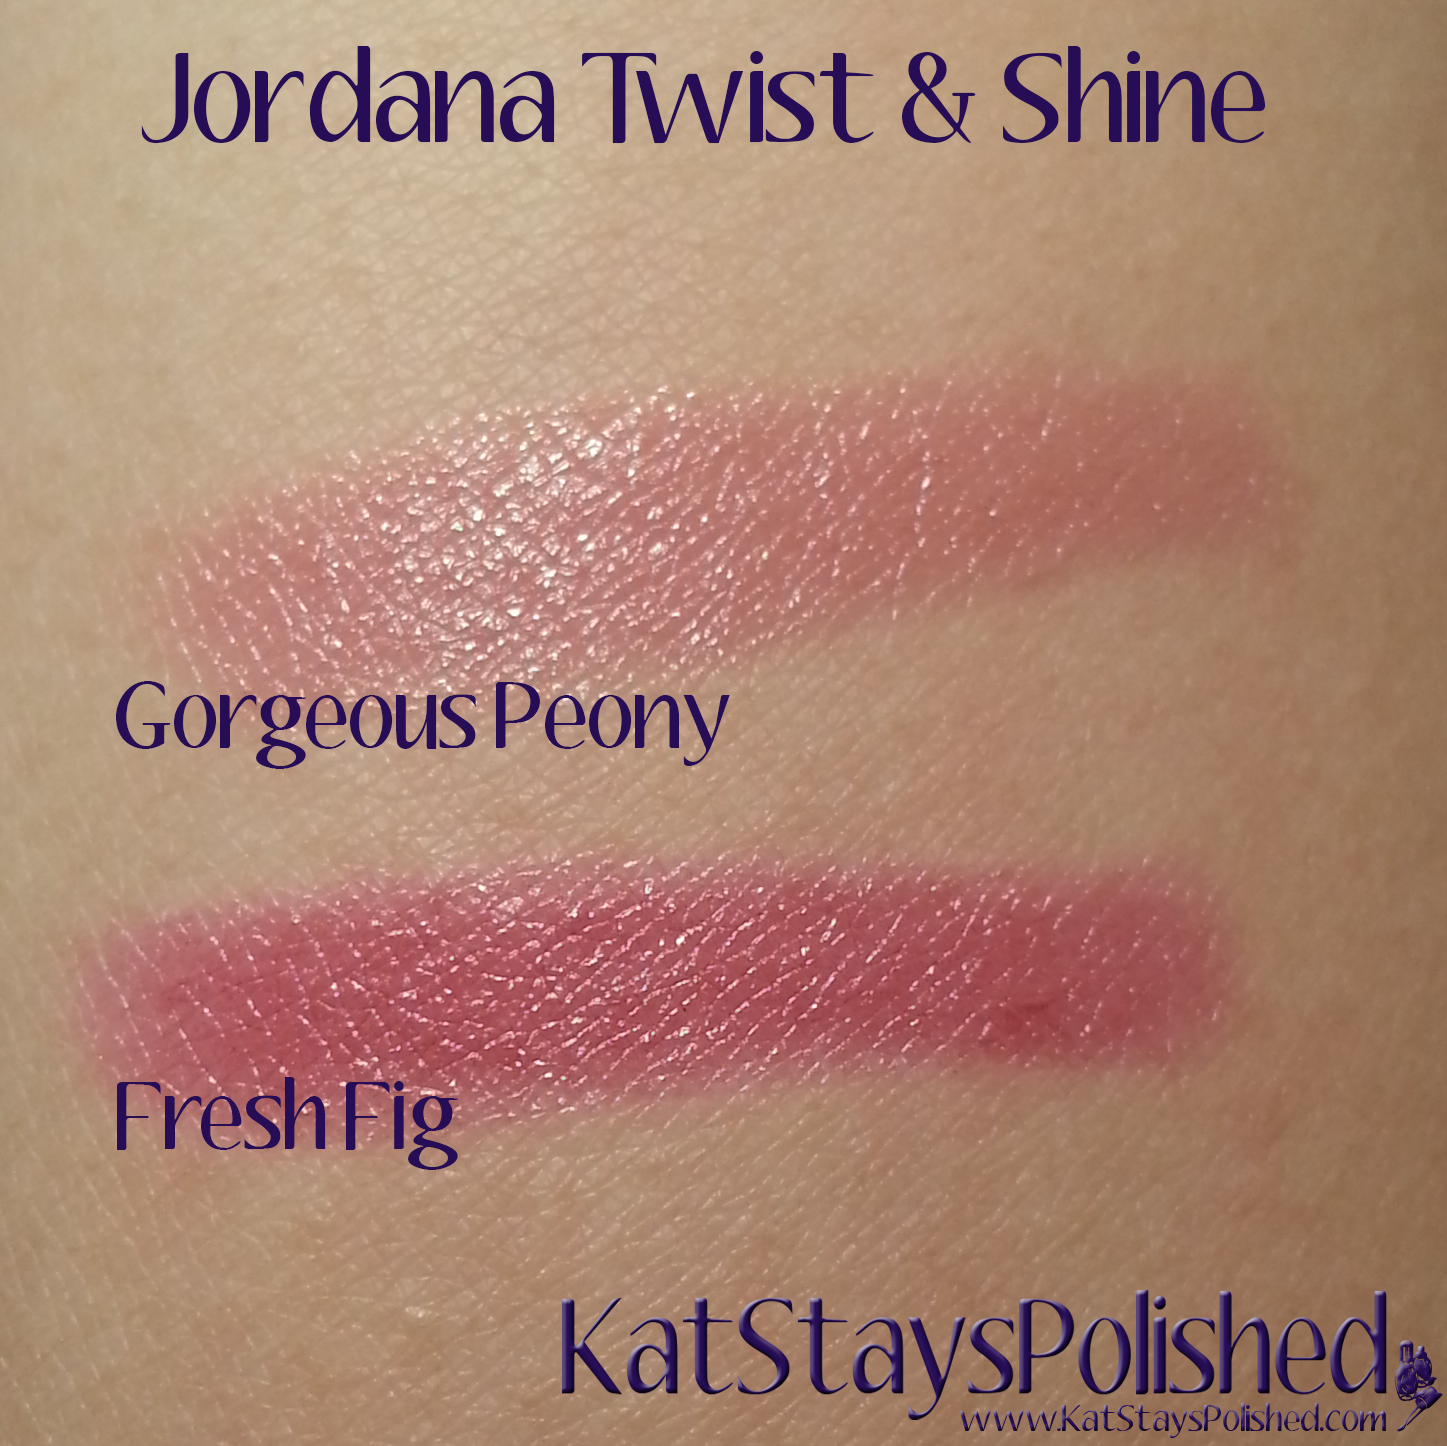 Jordana Twist & Shine | Kat Stays Polished